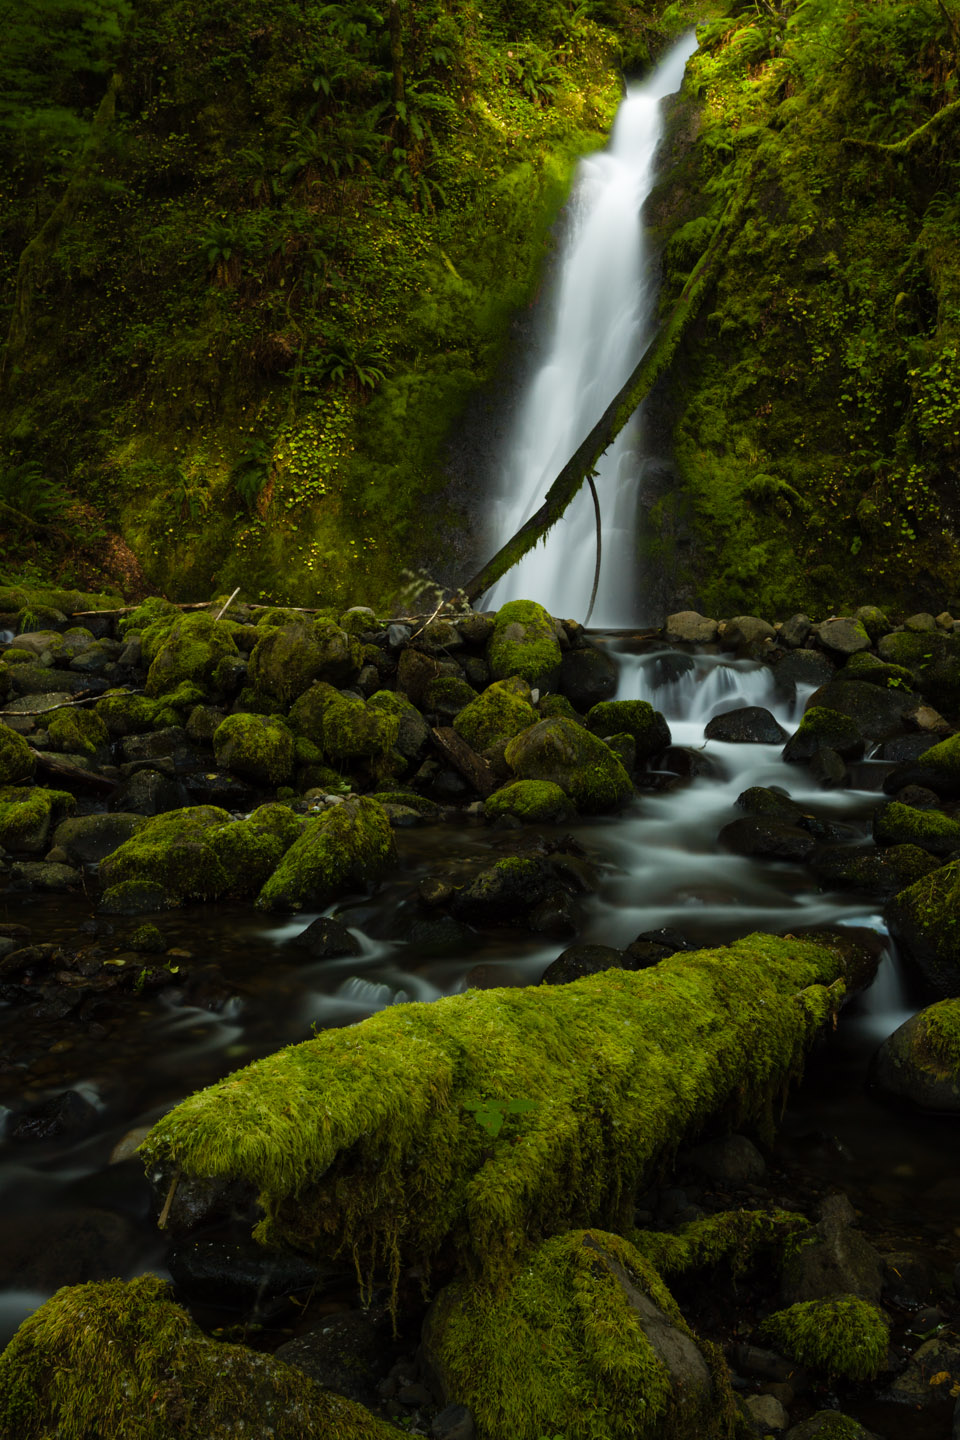 Columbia River Gorge is home to dozens of waterfalls, perfect for photography